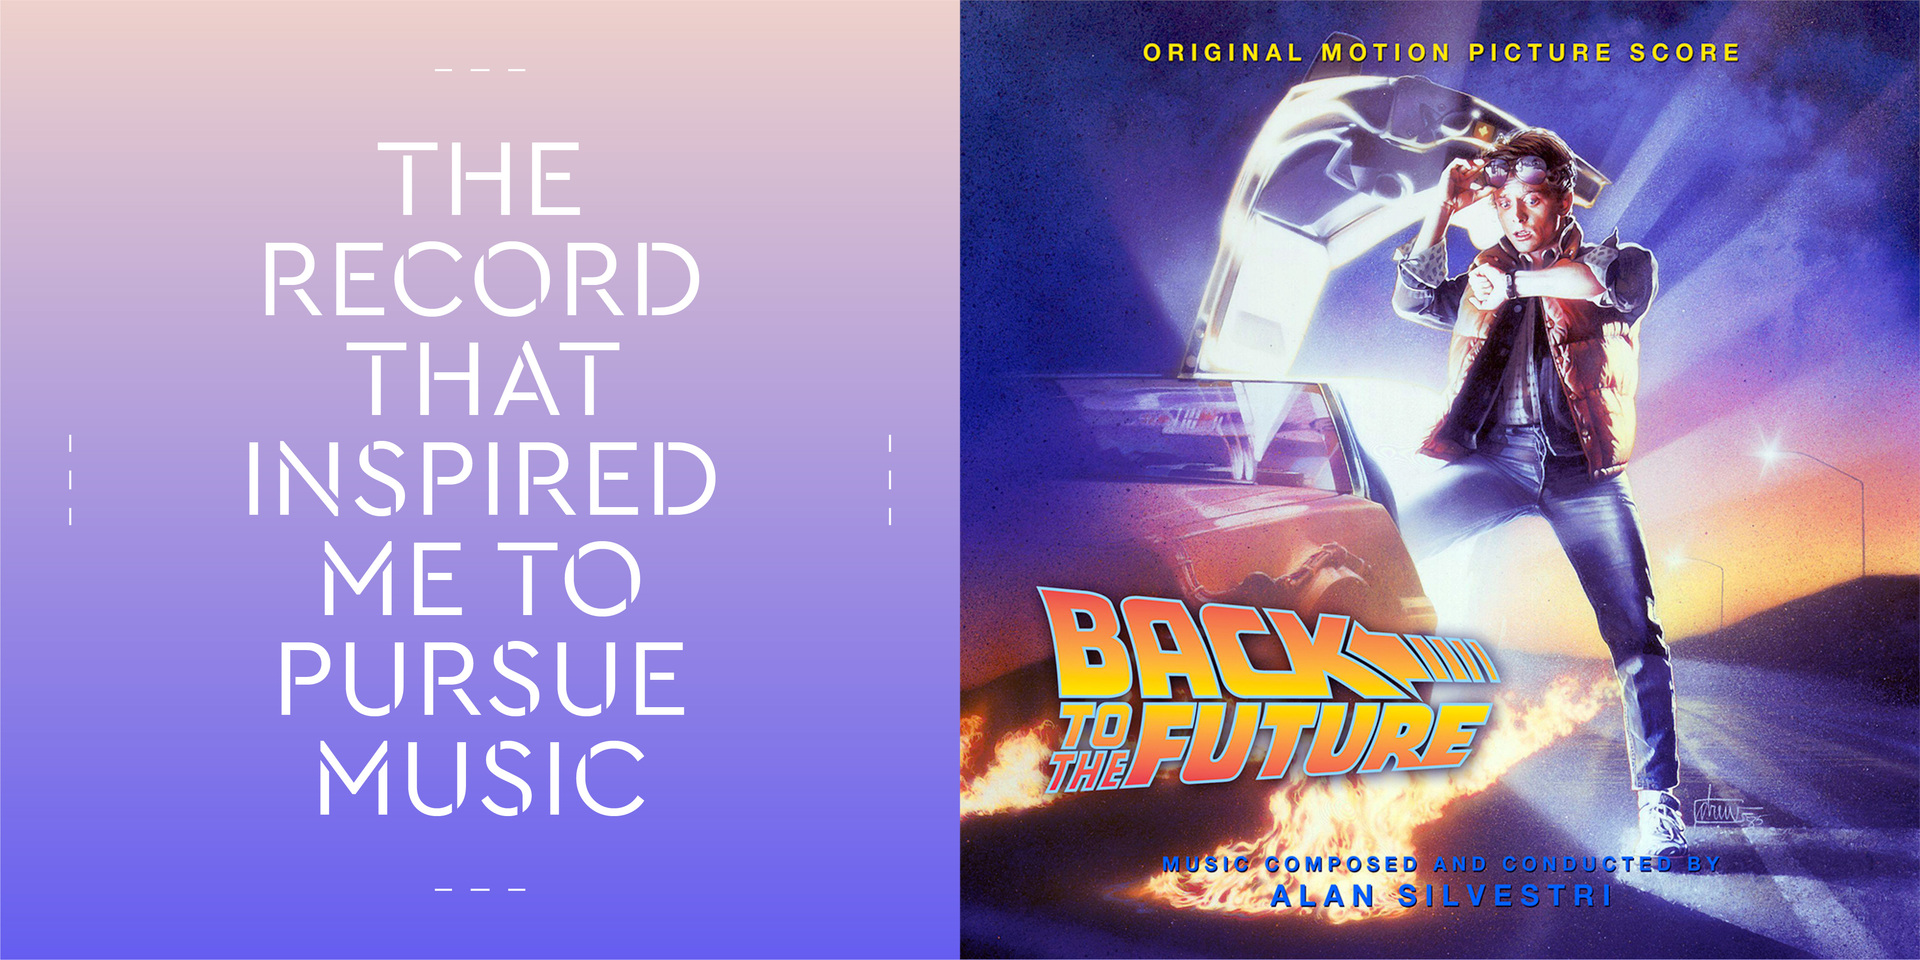 Back In Time Huey Lewis and the News Back To The Future OST